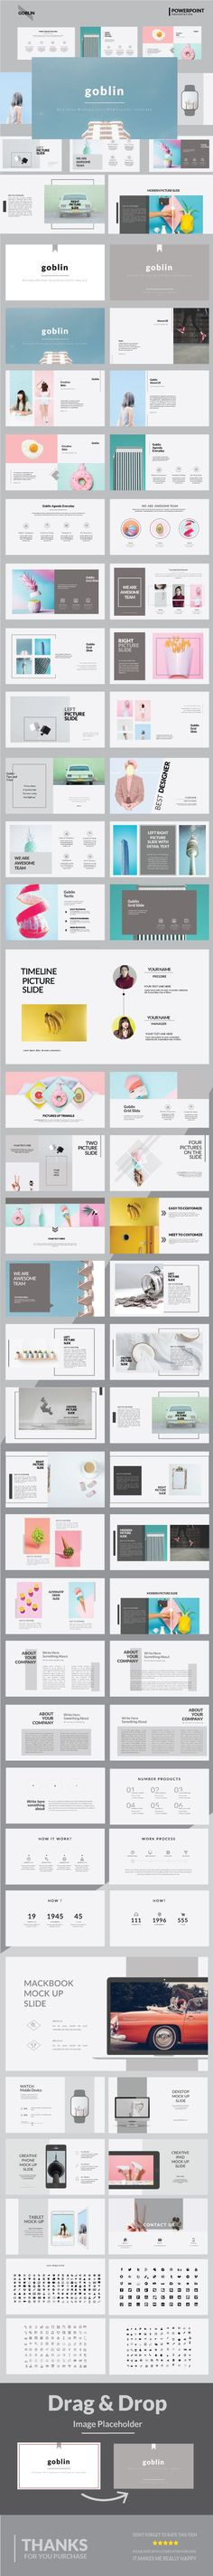 Goblin Multipurpose PowerPoint Template - #Business #PowerPoint Templates Download here: https://graphicriver.net/item/goblin-multipurpose-powerpoint-template/19455100?ref=alena994